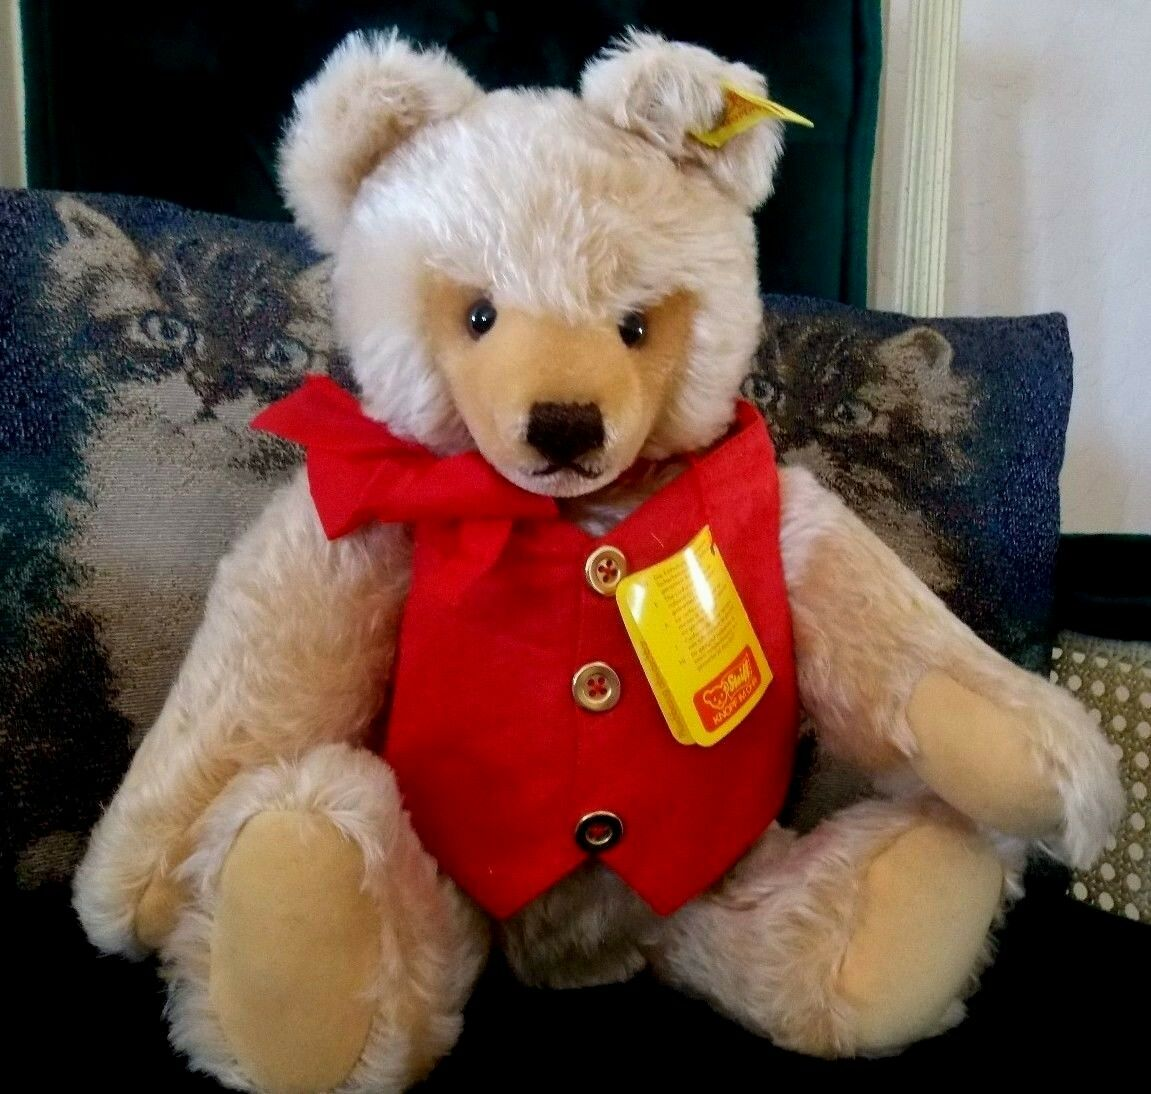 VINTAGE STEIFF TEDDY BEAR 14  BLOND-BUTTON LABEL 0201/41-rosso VEST C1